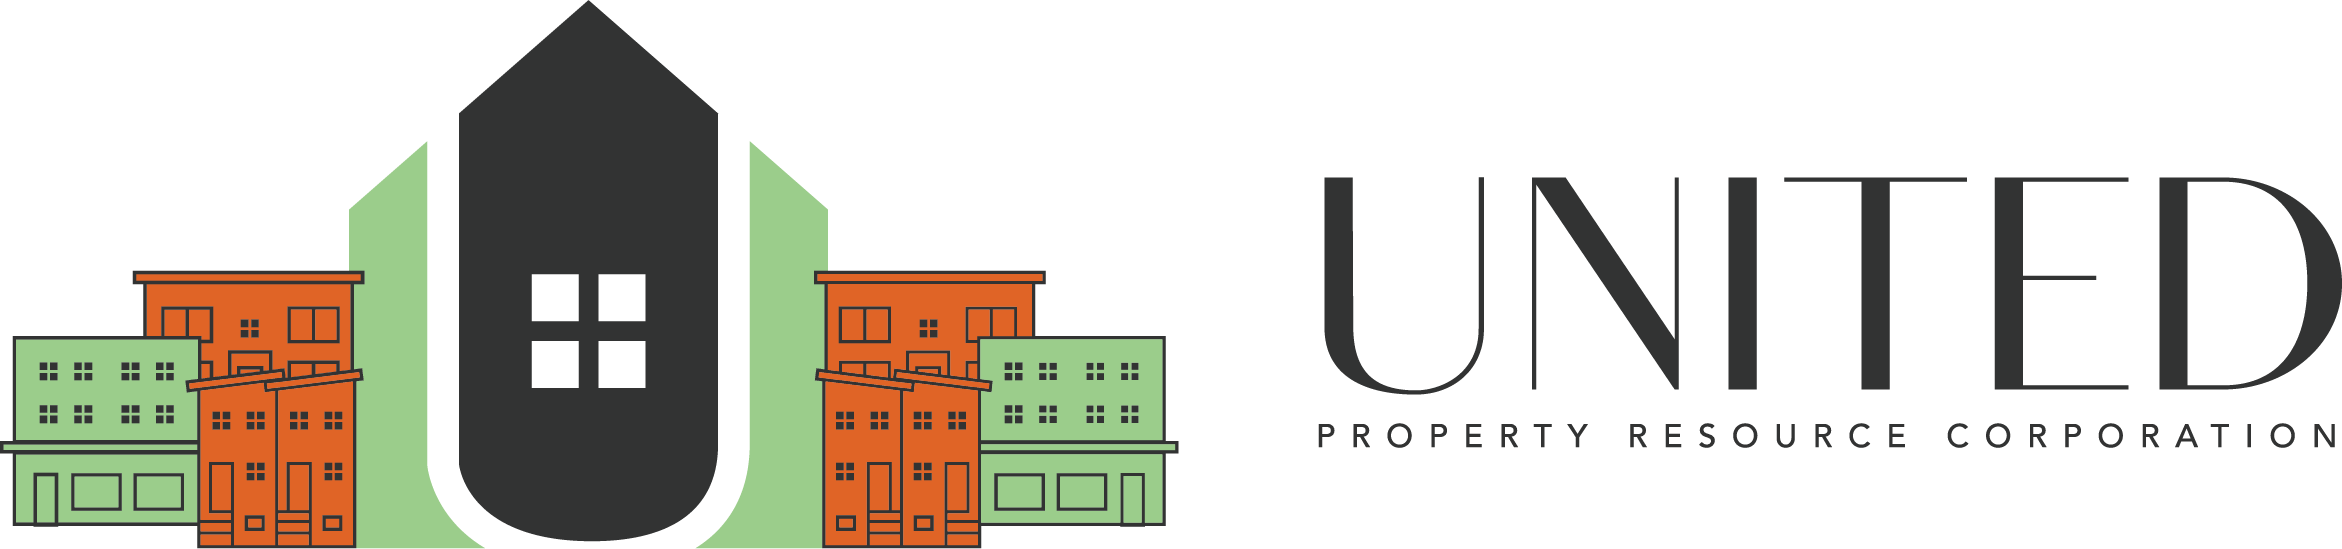 United Property Resource Corporation Website